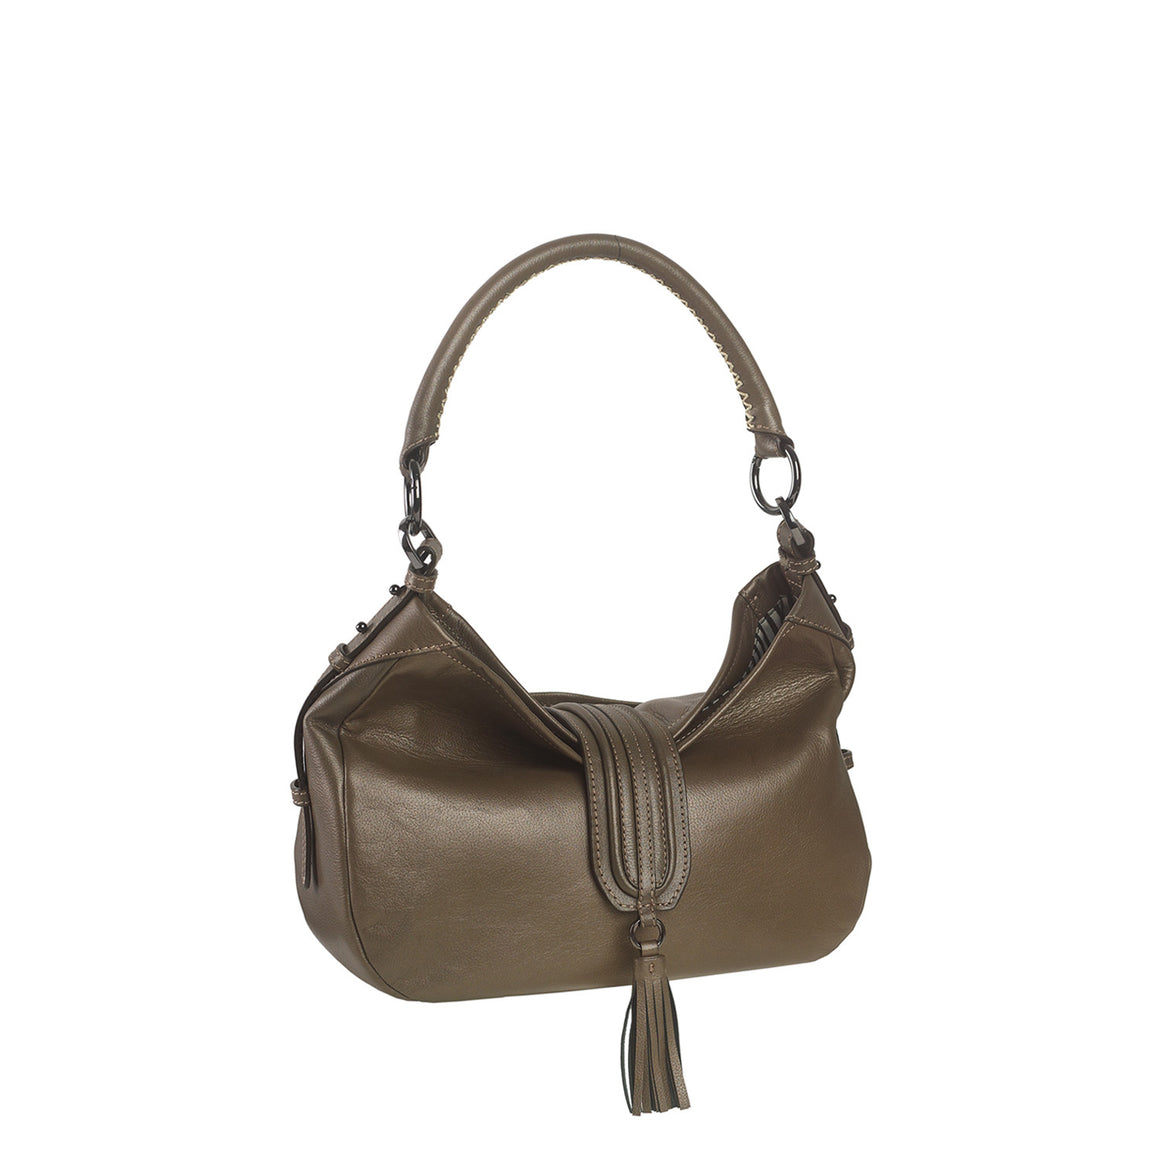 SB 0004 - TOHL BRIGITTE WOMEN'S SHOULDER BAG - METALLIC COPPER